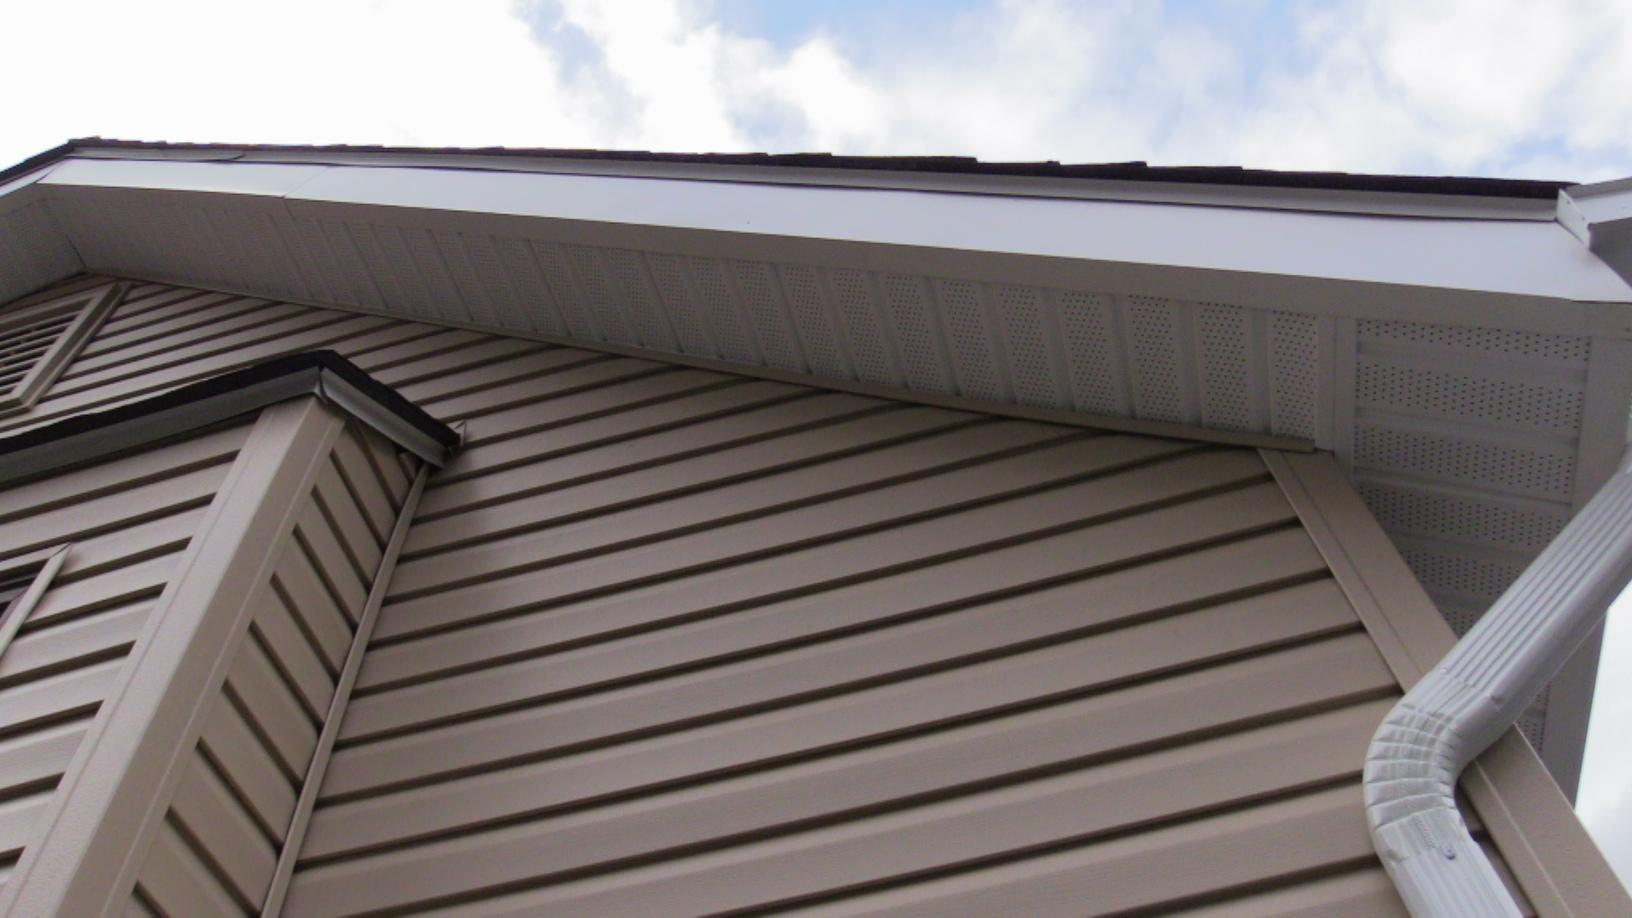 Soffit, Fascia, and Siding